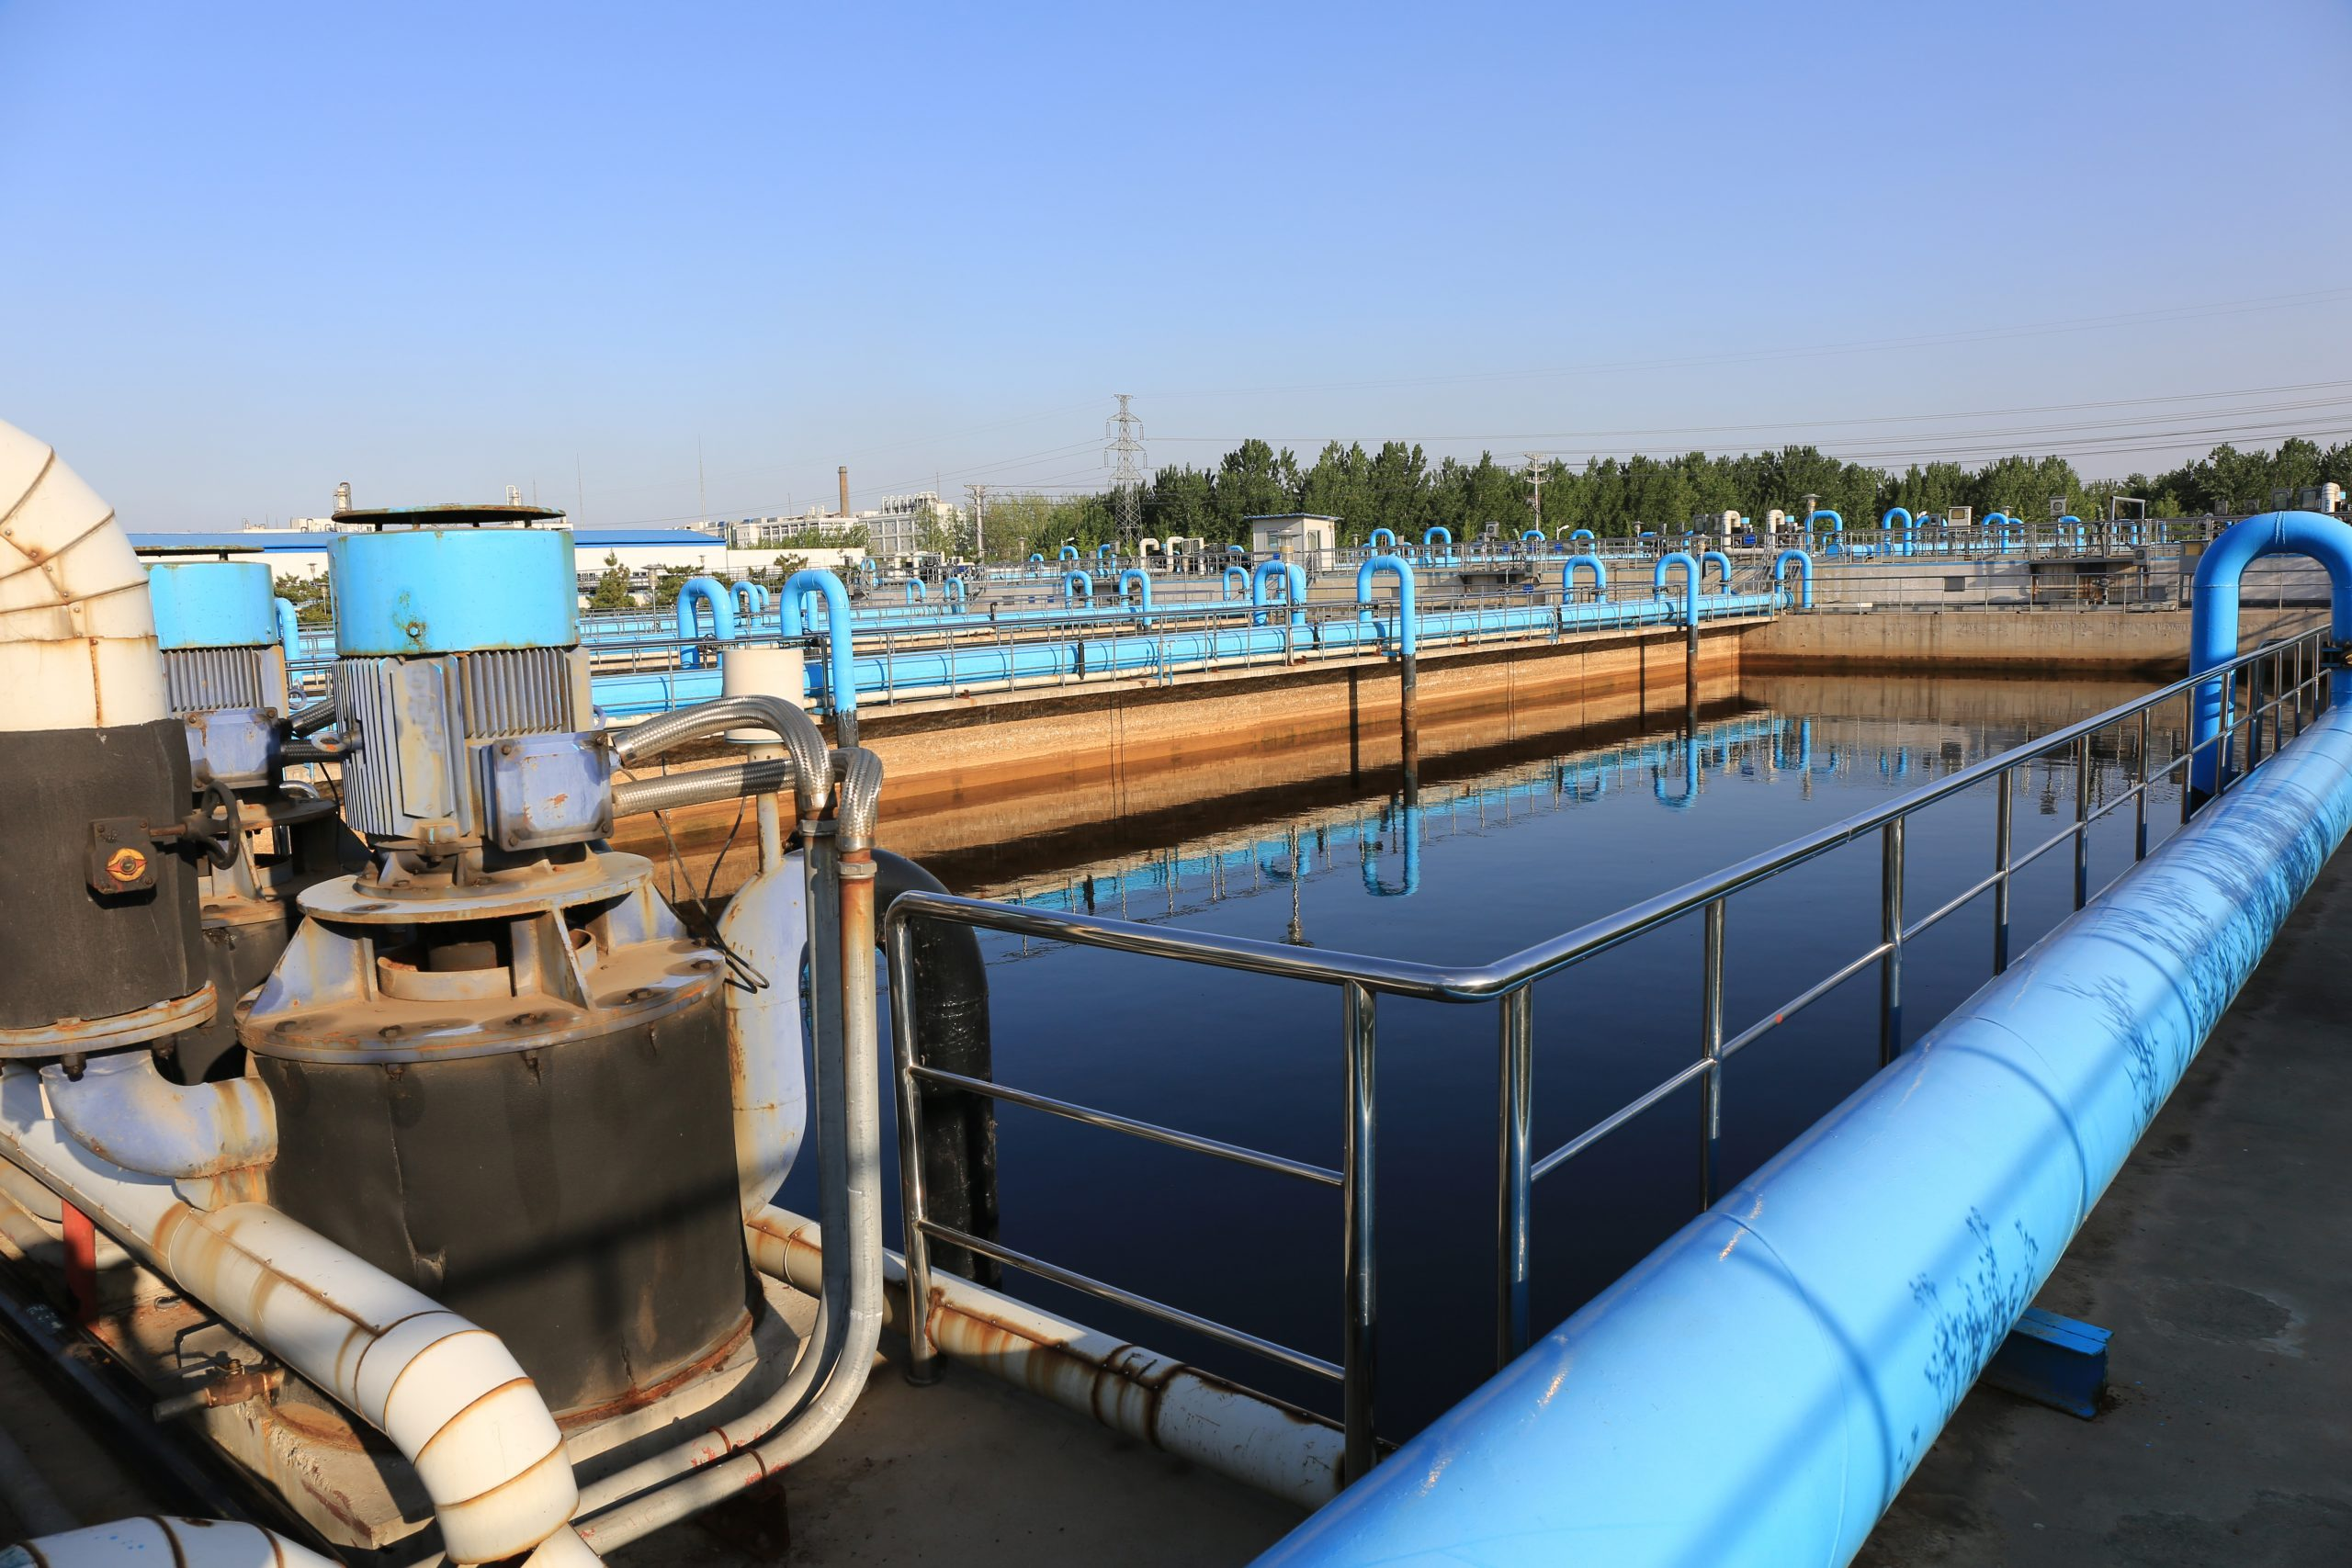 120Water Announces Partnership to Monitor COVID-19 in Illinois Wastewater